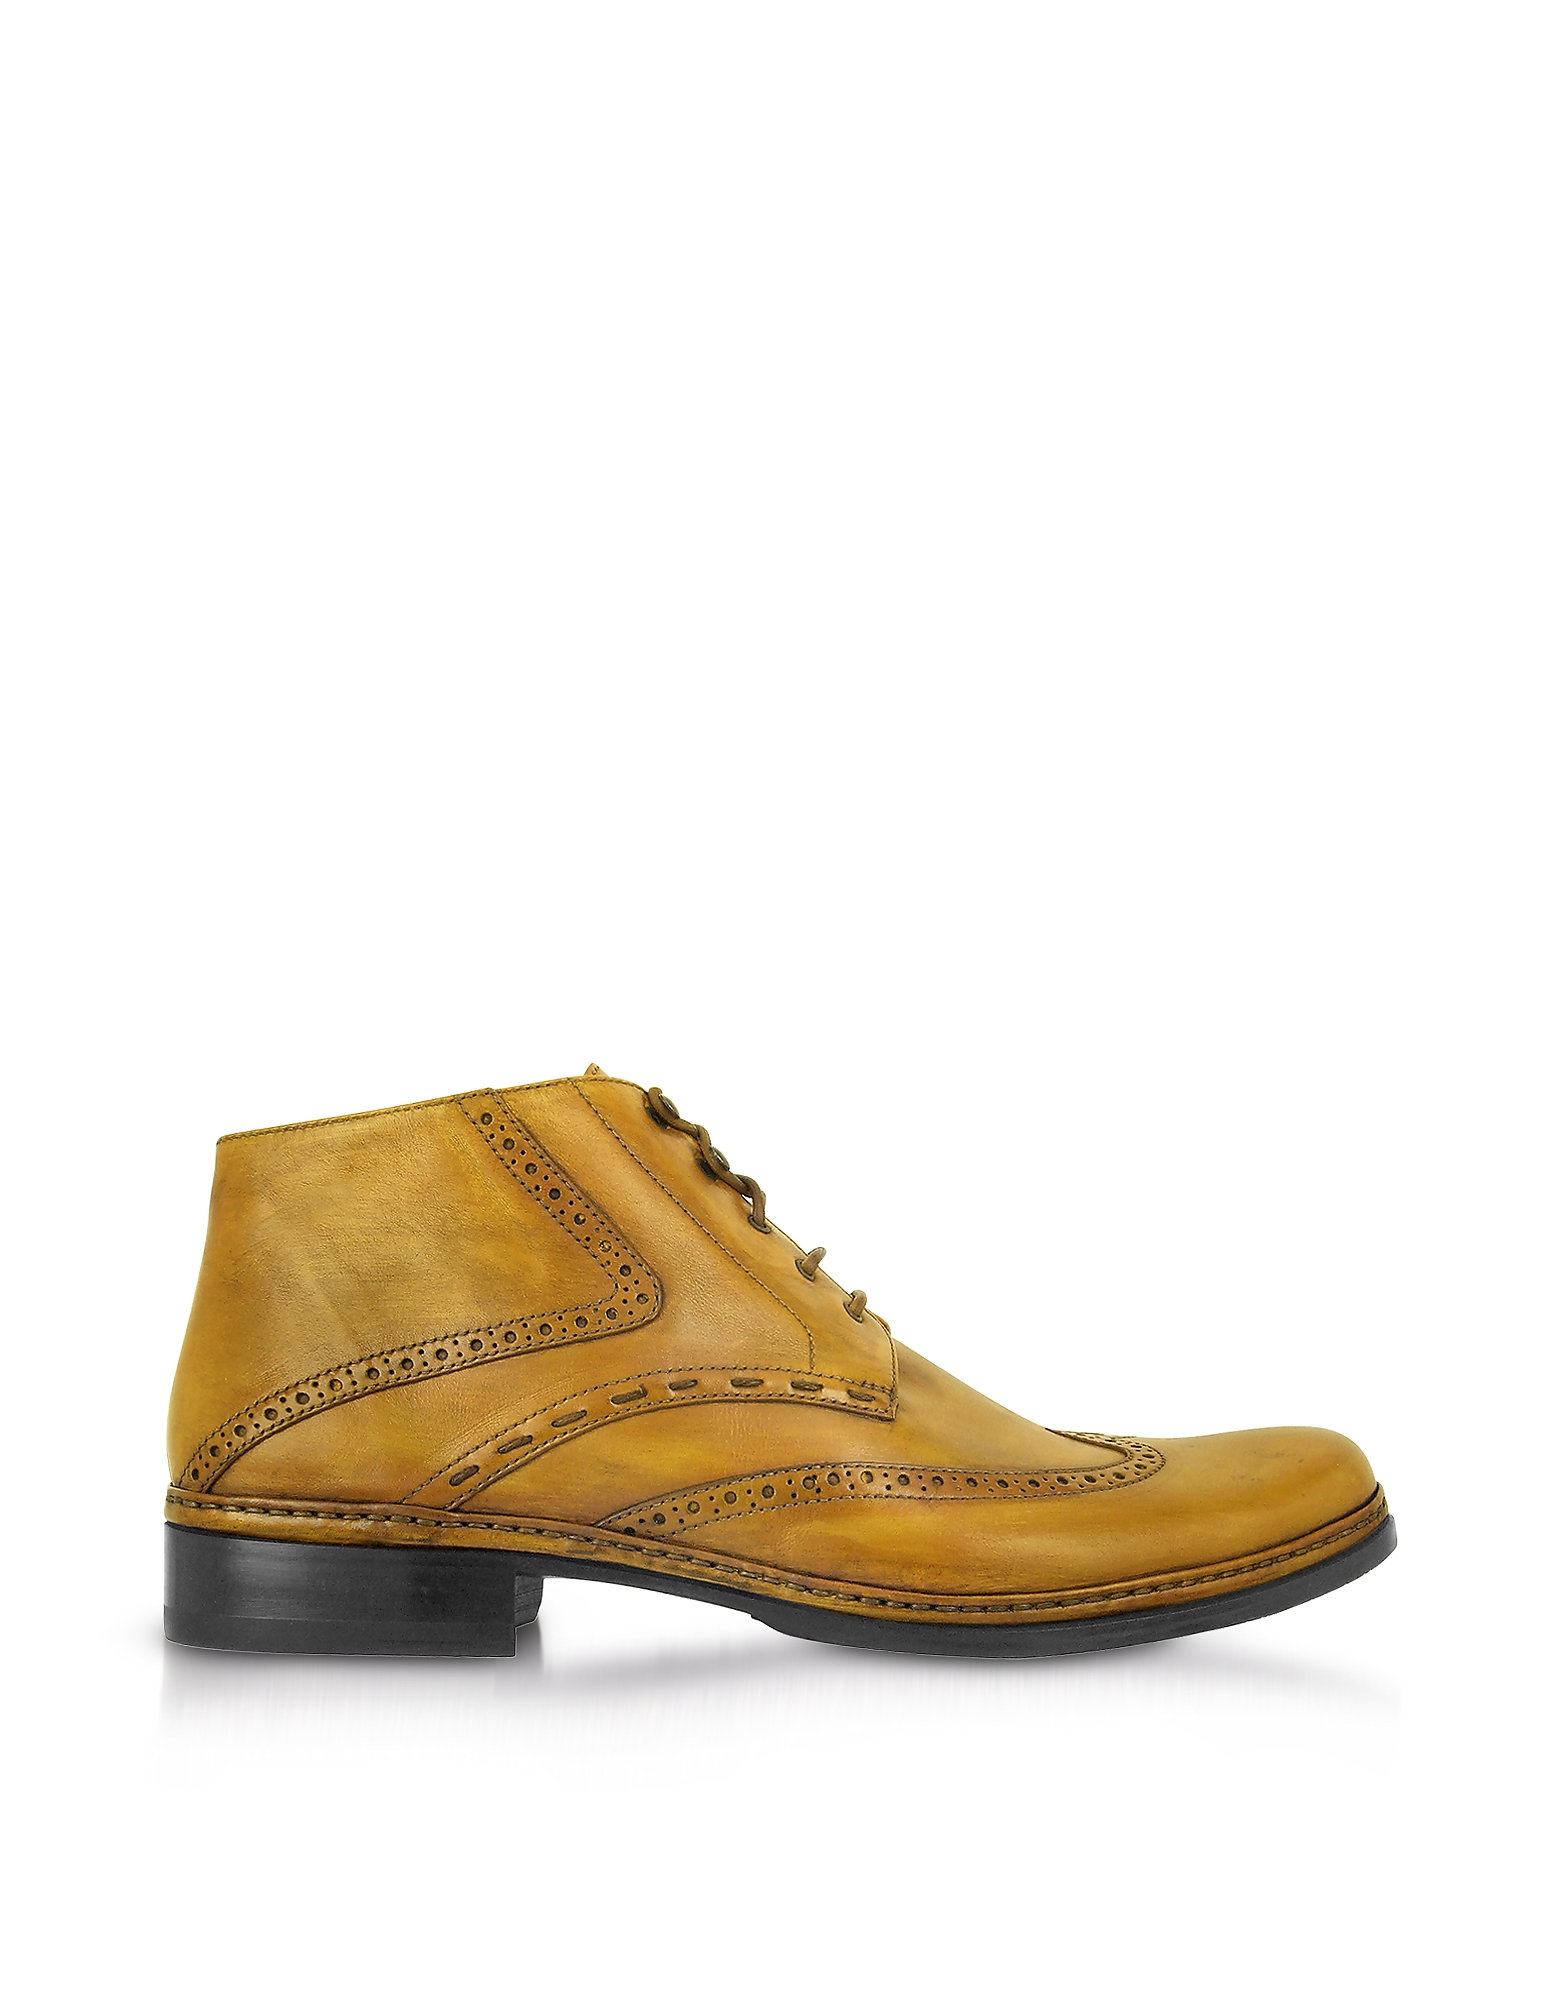 Pakerson Shoes, Ocher Handmade Italian Leather Wingtip Ankle Boots